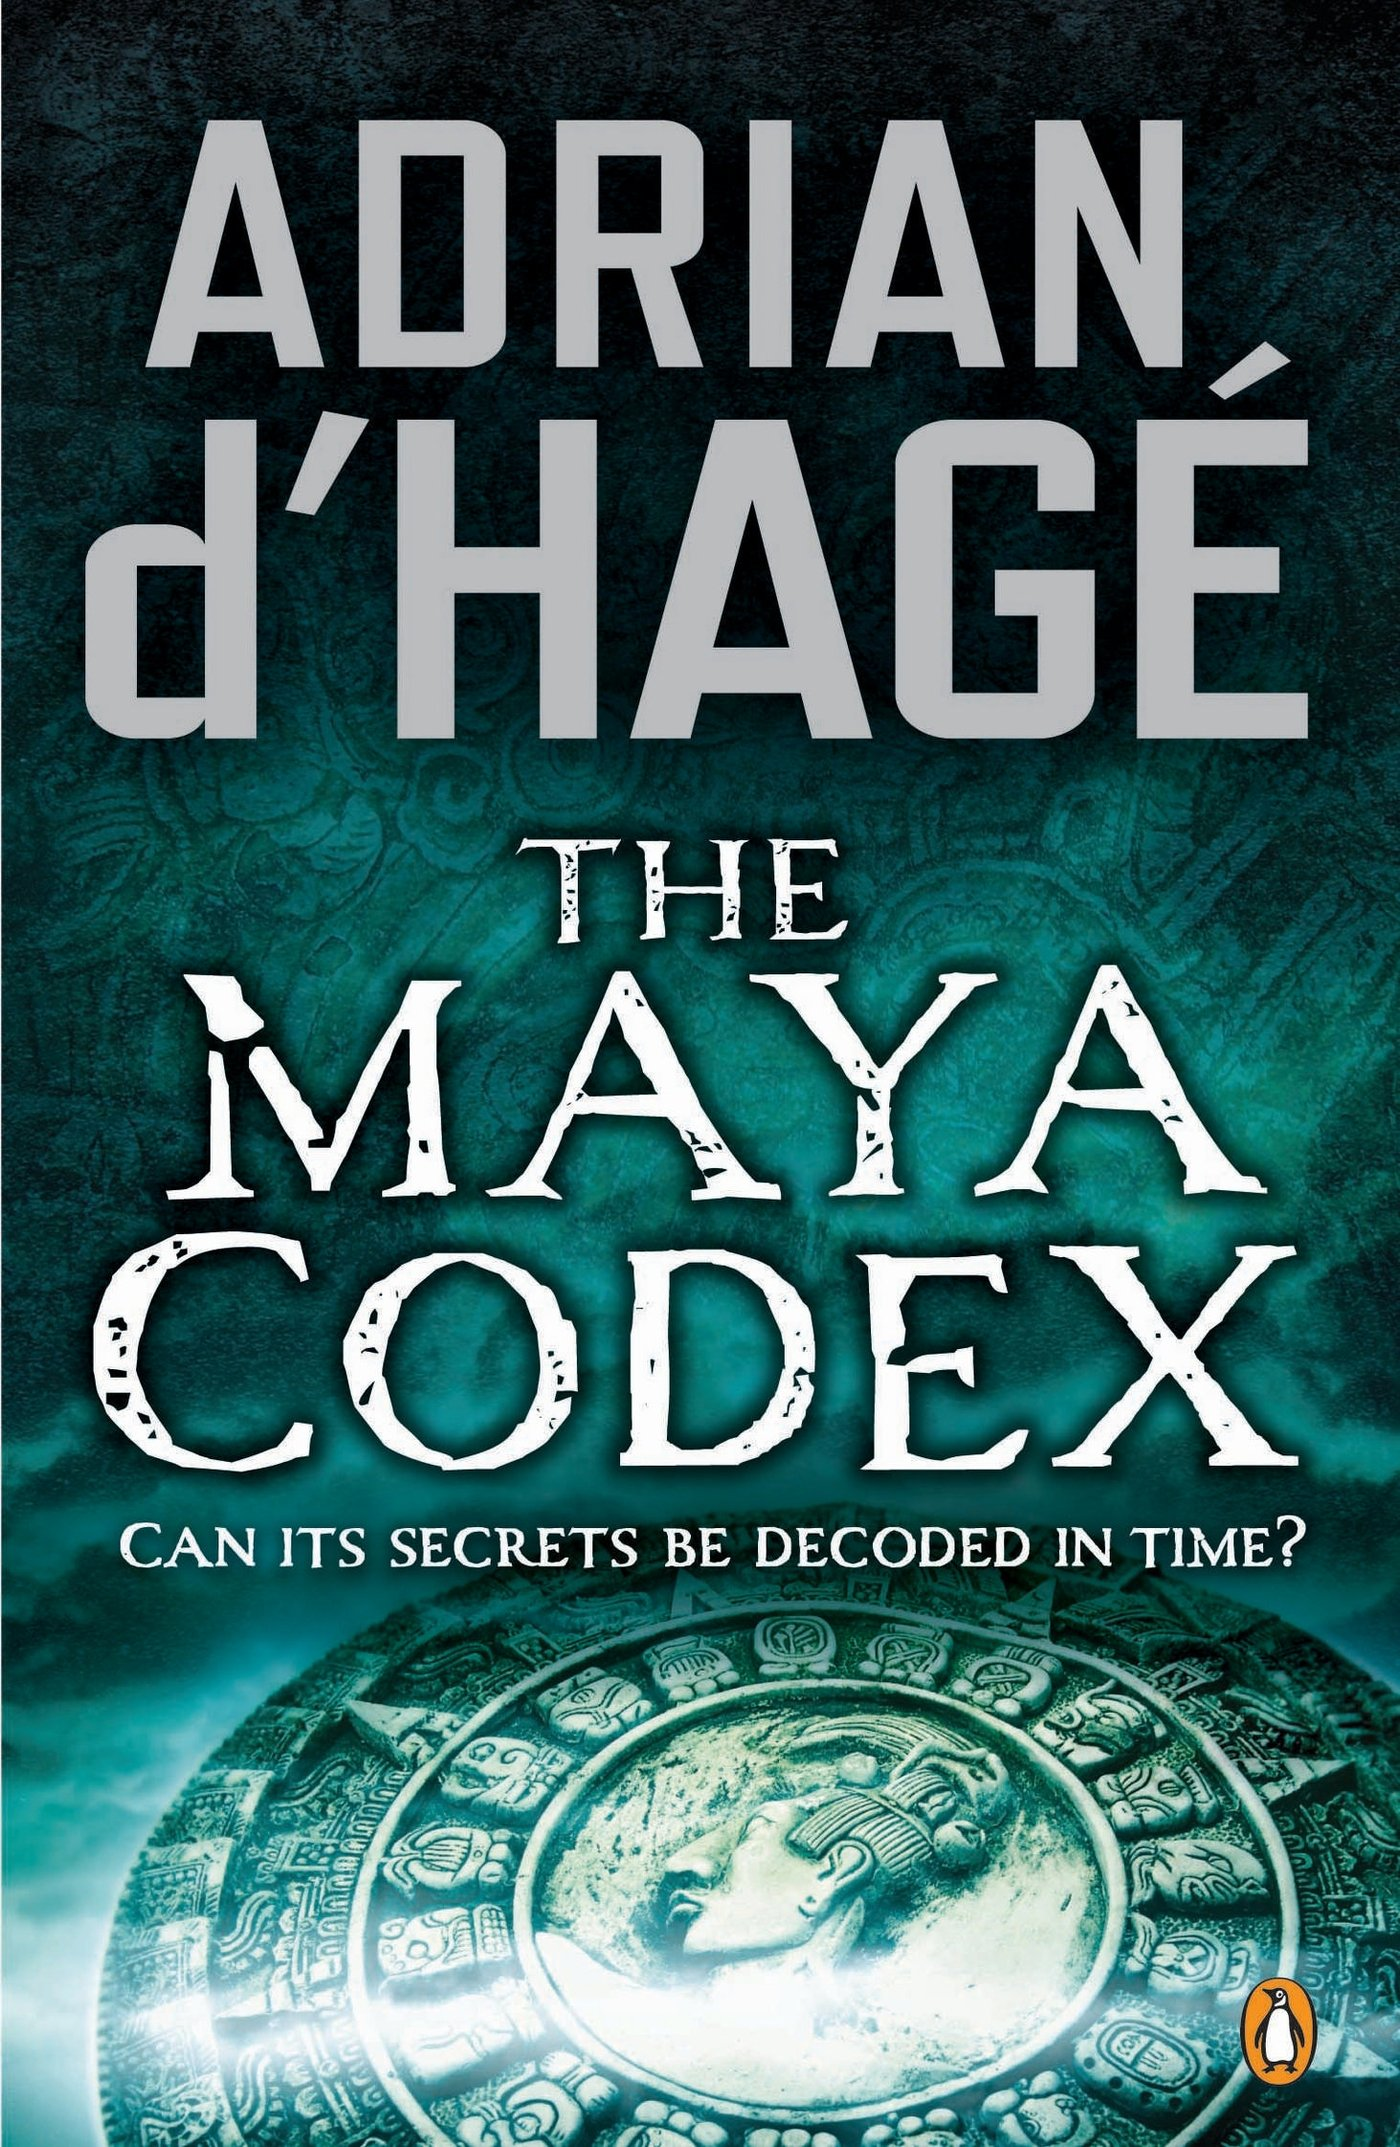 Book cover of The Maya Codex